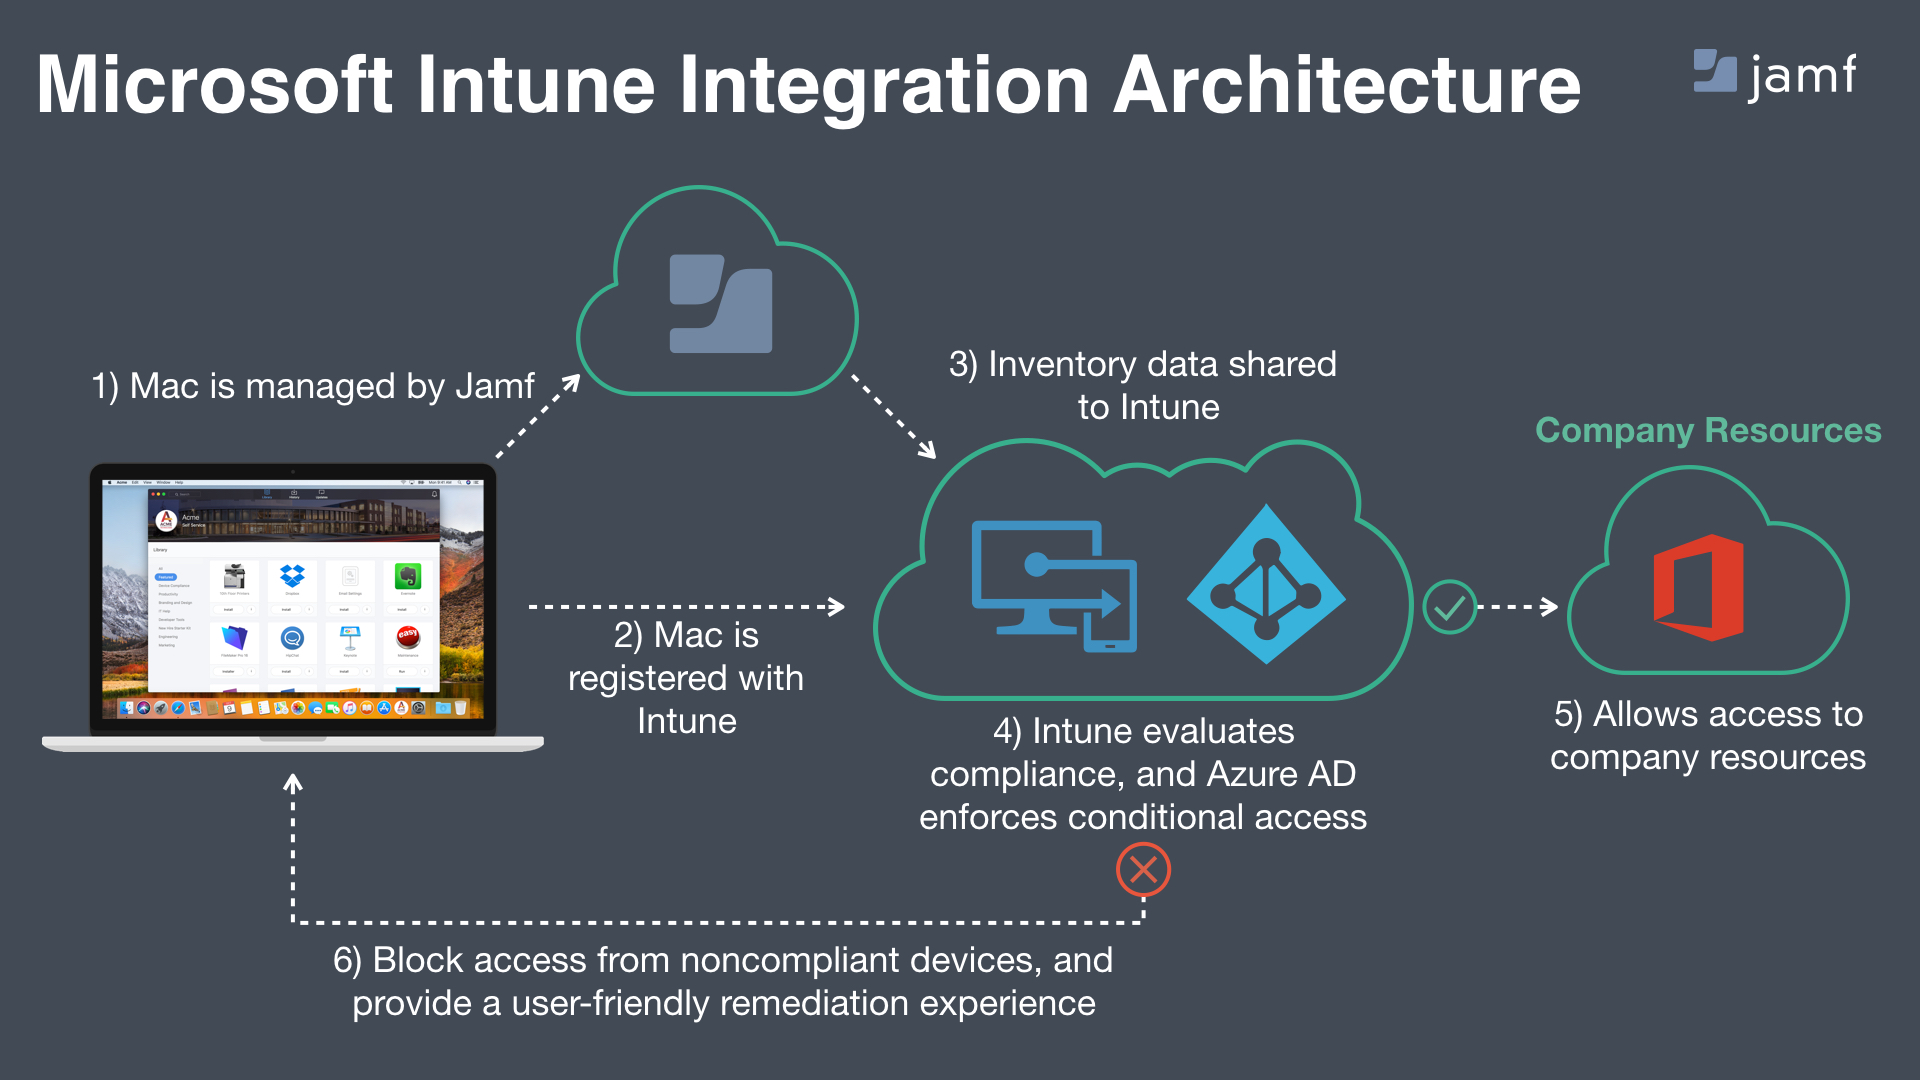 Tivoli Access Manager Architecture Overview Overview Integrating With Microsoft Intune To Enforce